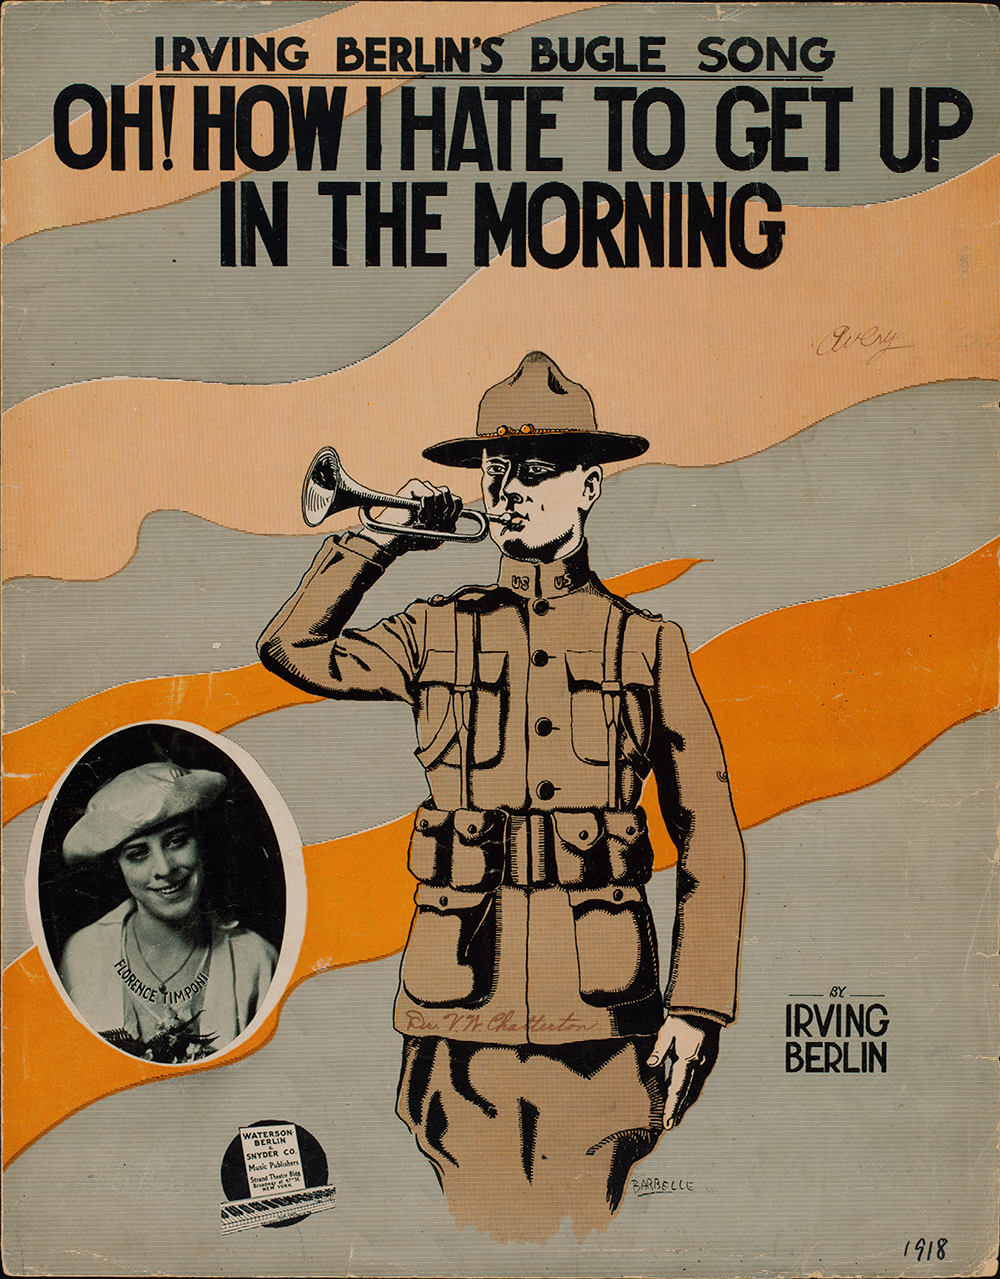 """Oh! How I Hate to Get Up in the Morning"" by Irving Berlin, 1918. The New York Public Library, Music Division."